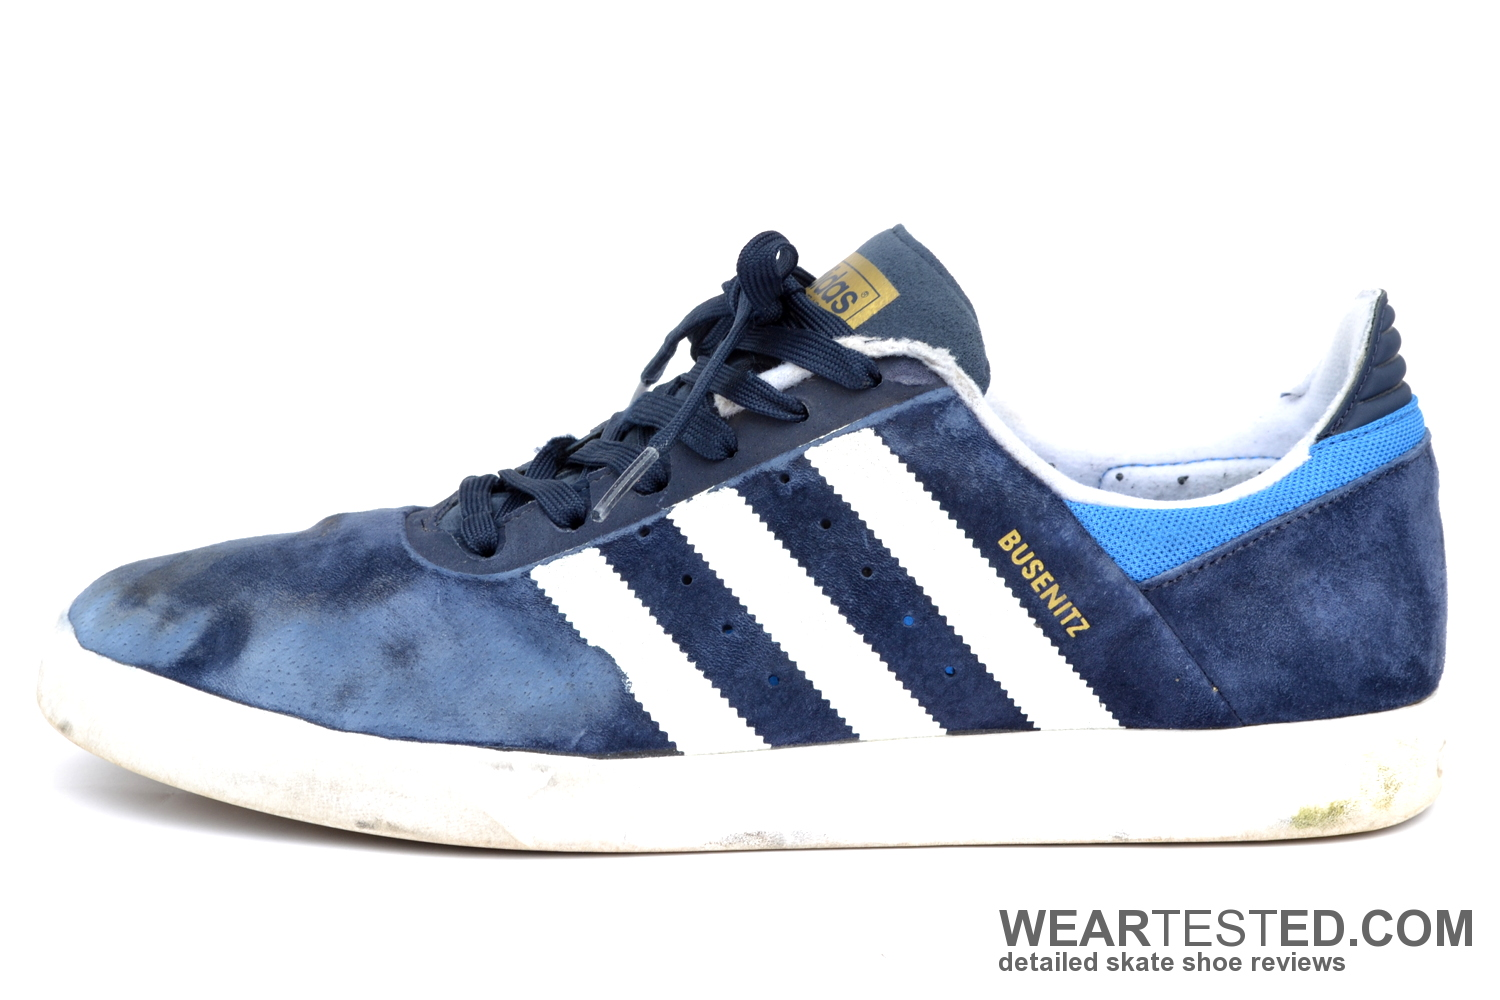 adidas Busenitz ADV Weartested detailed skate shoe reviews